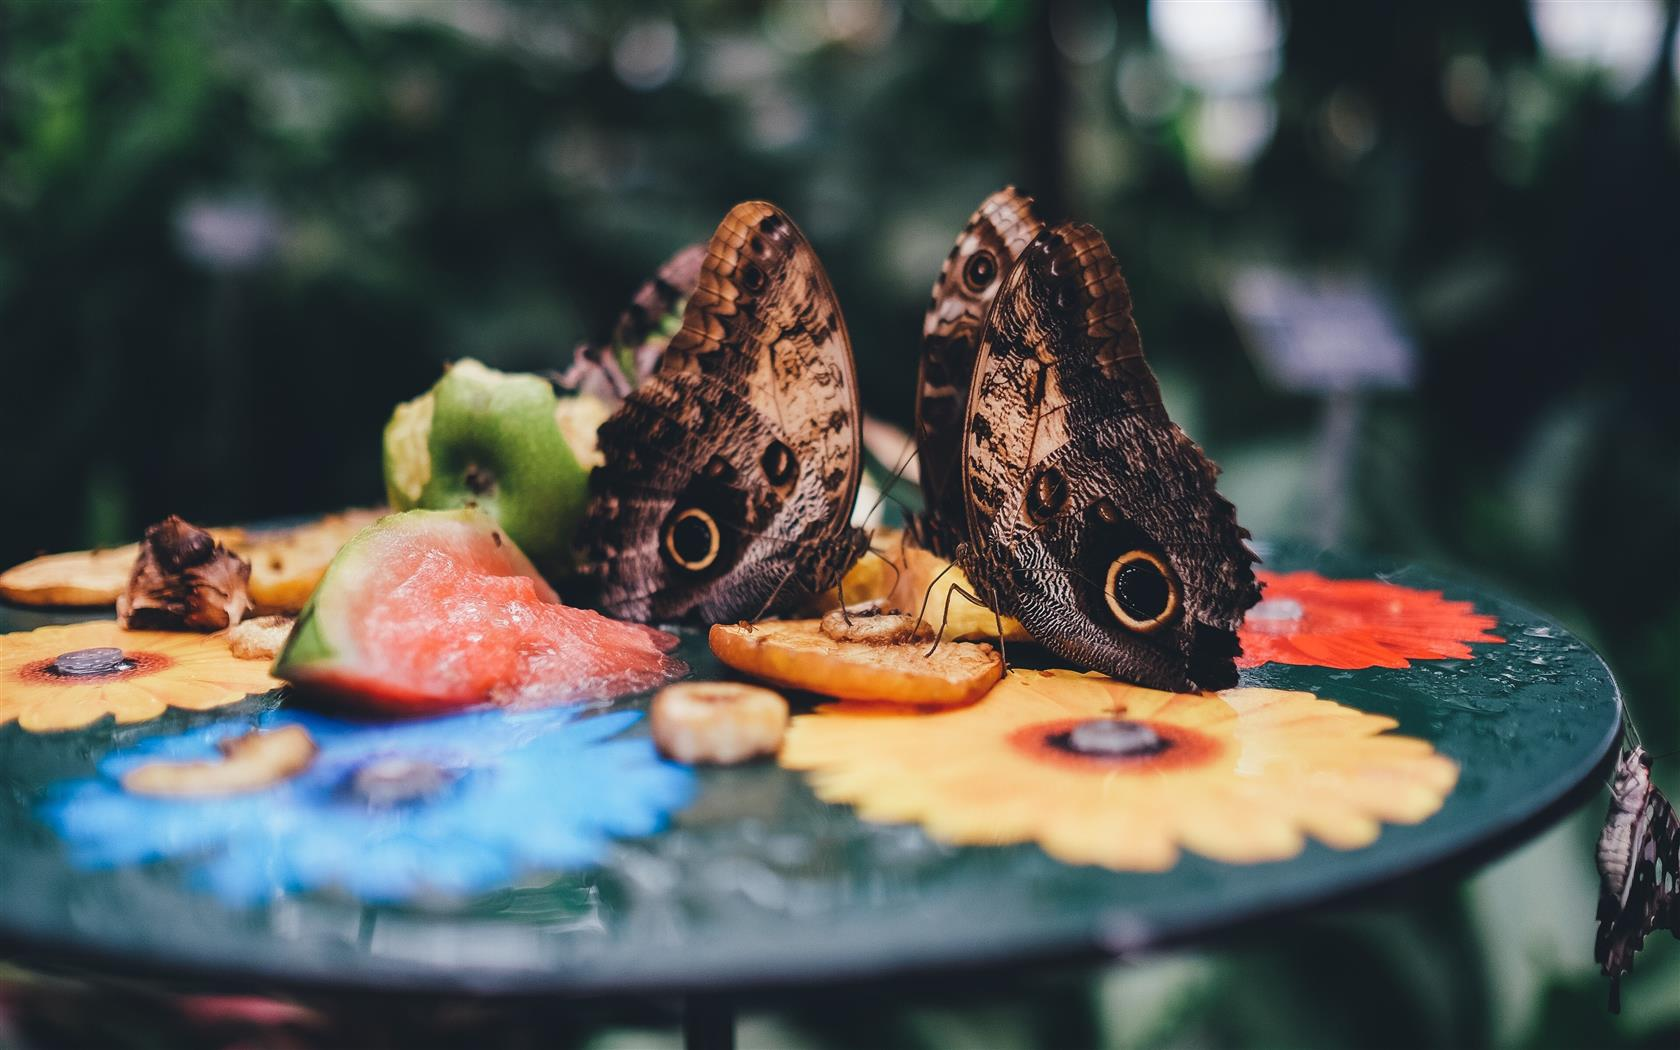 1680x1050 Butterflies on Fruit Table 4K Wallpaper